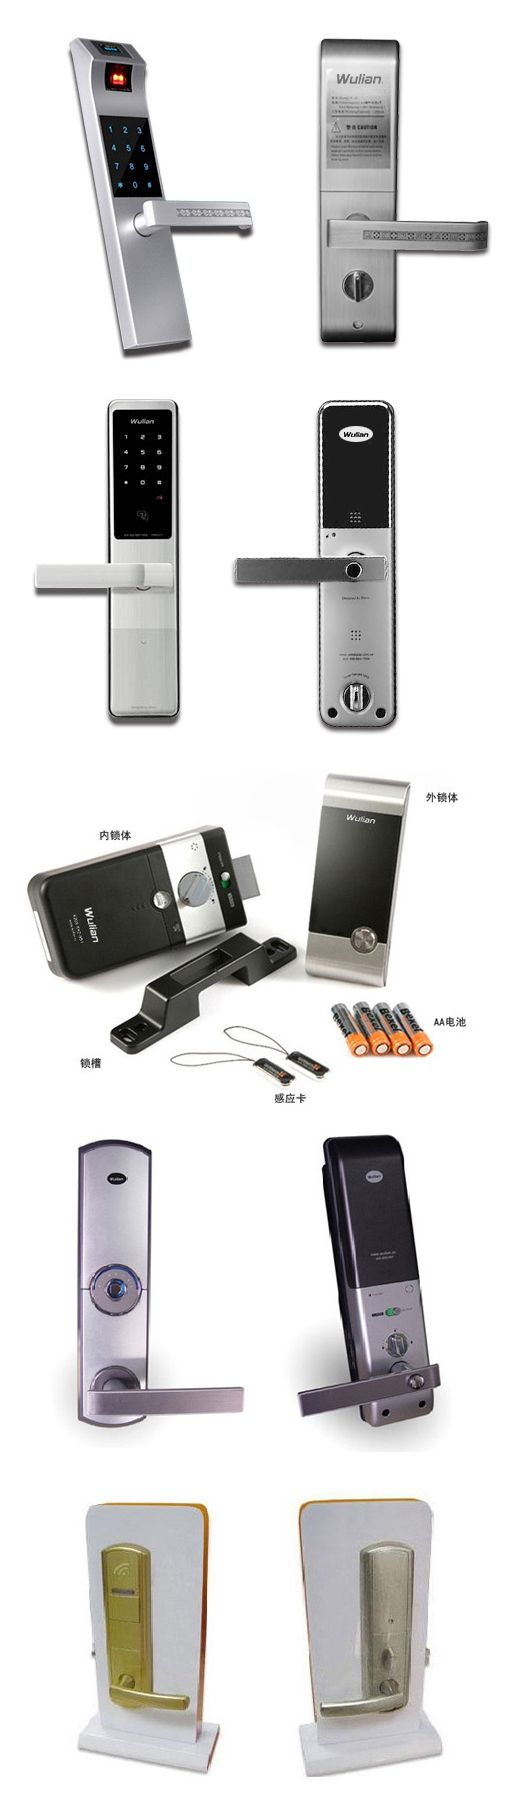 Wireless Smart Lock ----Home Security System Looking for strong Distributor for Wireless ZIGBEE Home Automation System, including the Hardware and Software. We can provide Technology Support ,Experience Pavilion Building Support,Training Support and Others.  Welcome to email me : Chendh@wuliangroup.cn